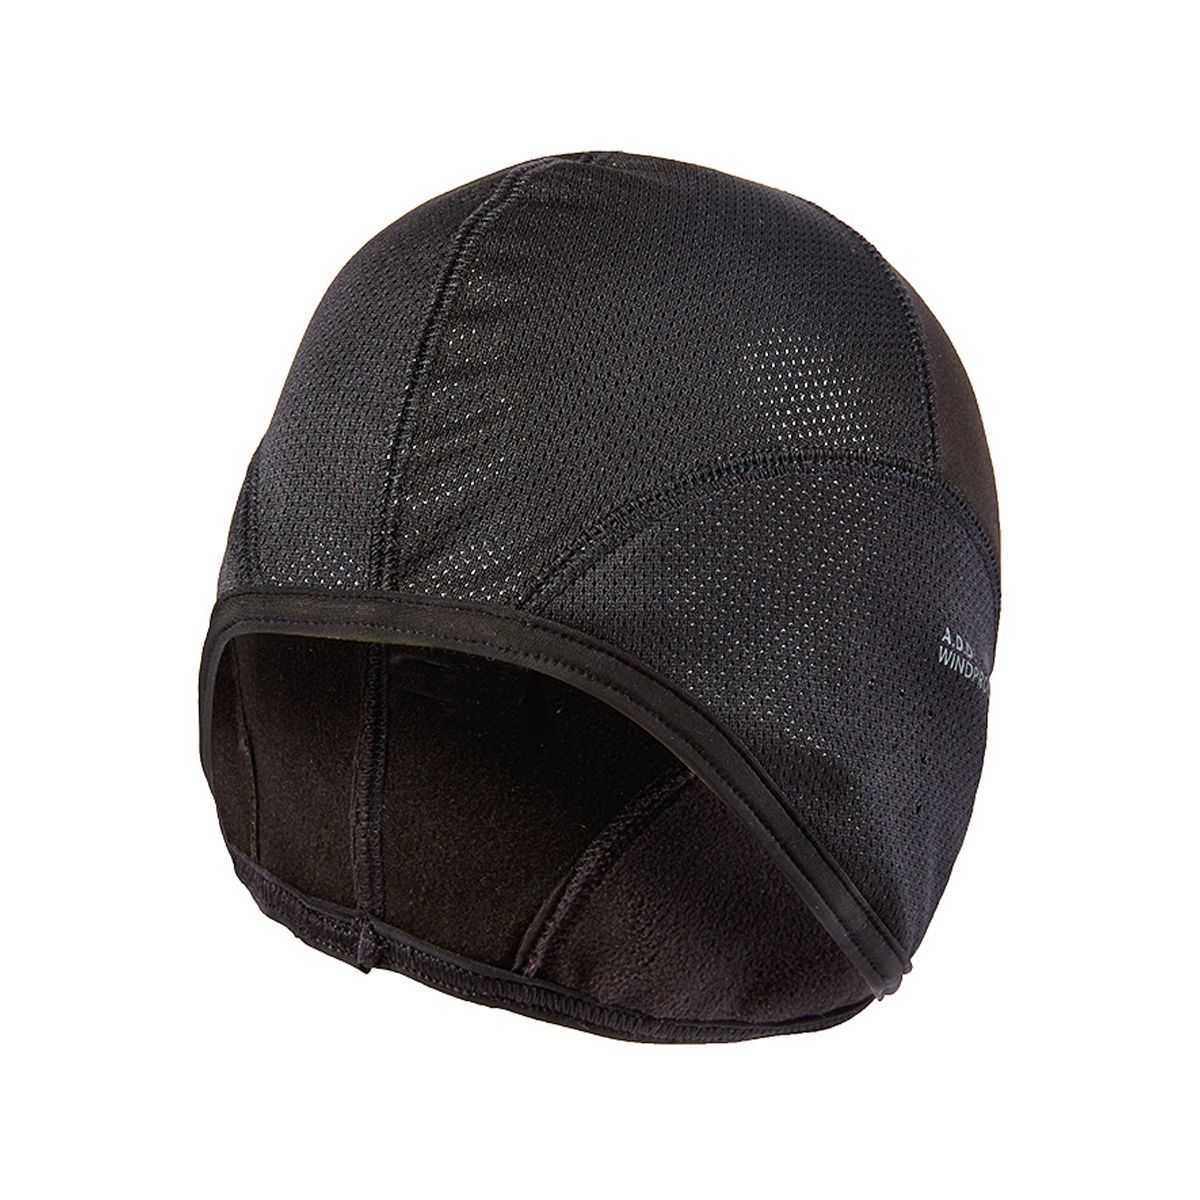 SealSkinz Windproof Skull Cap Men's